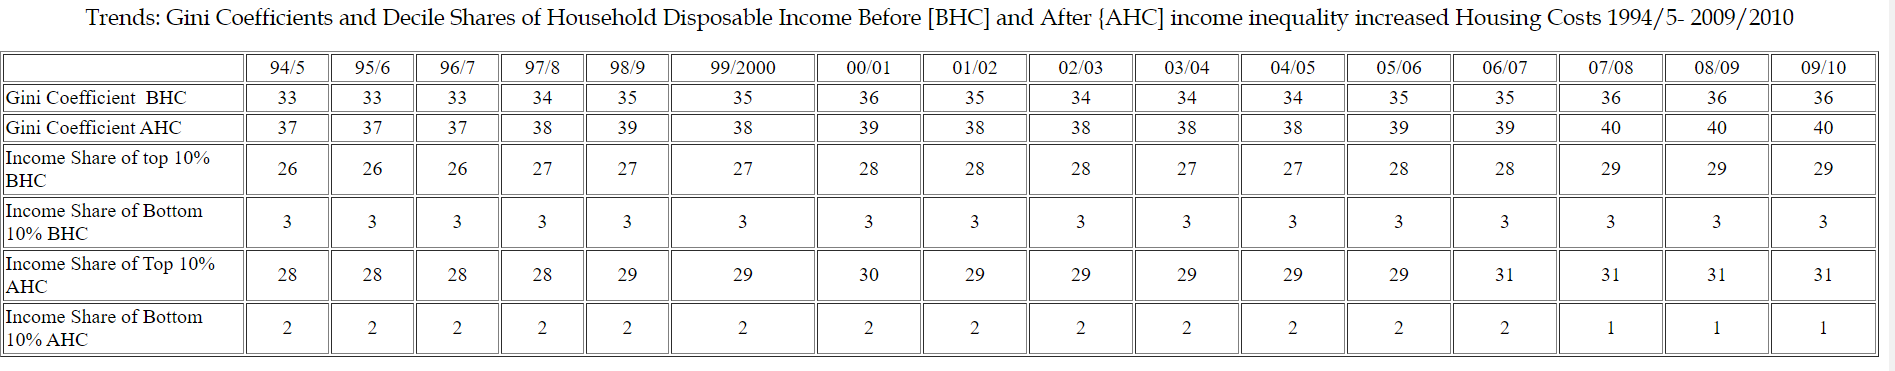 trends gini coefficients and decile shares of household disposable income